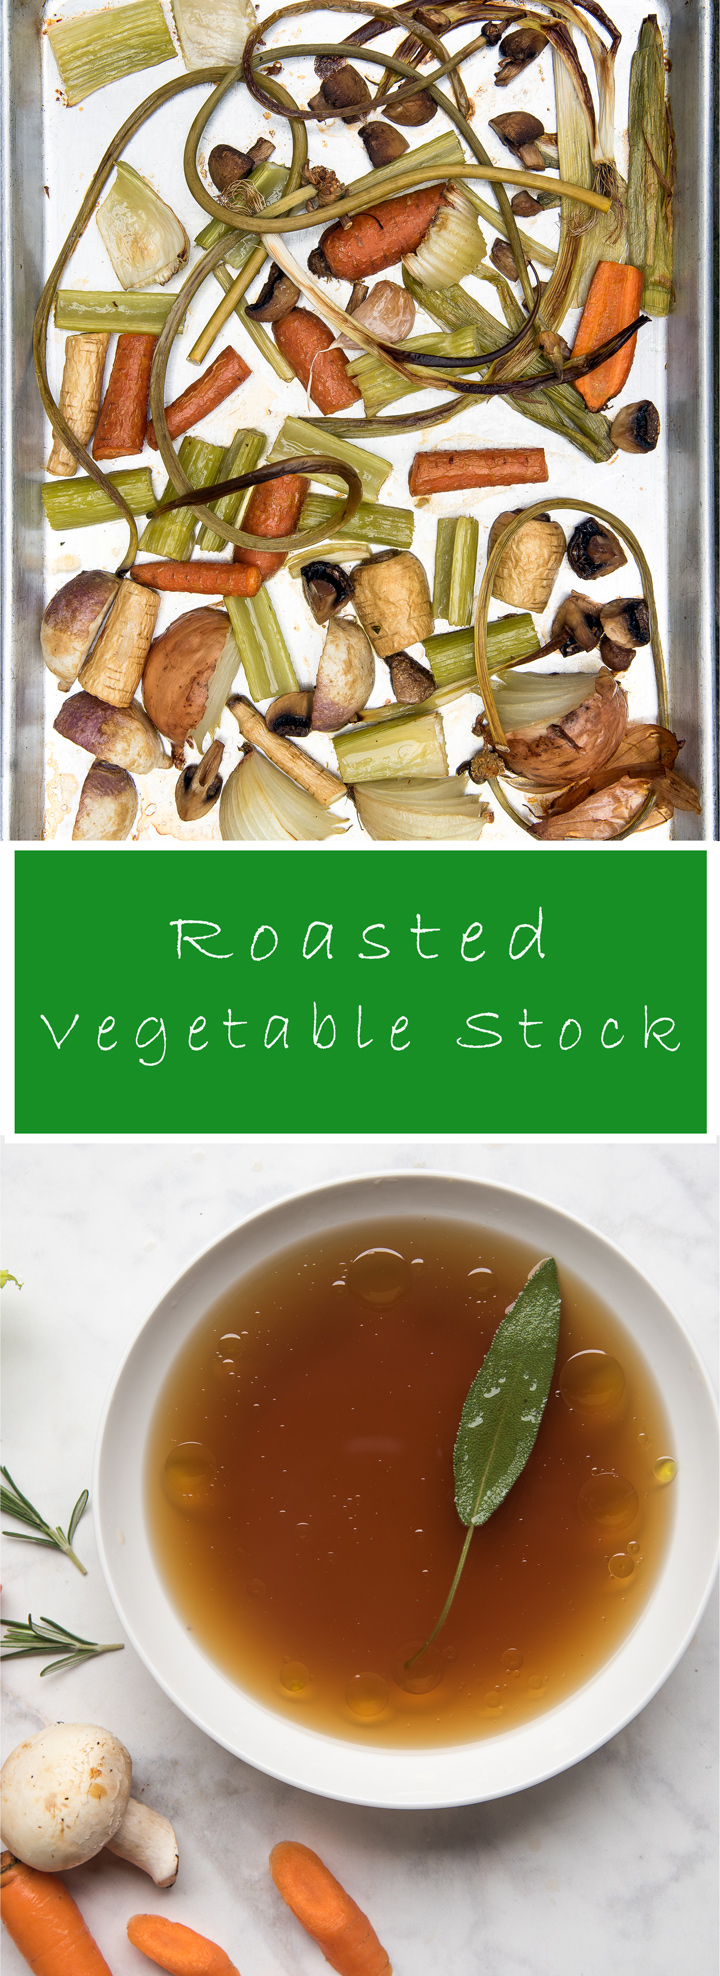 Roasted Vegetable Stock Recipe. This is an all-purpose vegetable stock recipe and the only one worth making. Before you simmer the vegetables roast them and deglaze the pan. These two extra steps adds depth of flavor and a deep golden color. Recipe from How to Cook Everything by Mark Bittmen.